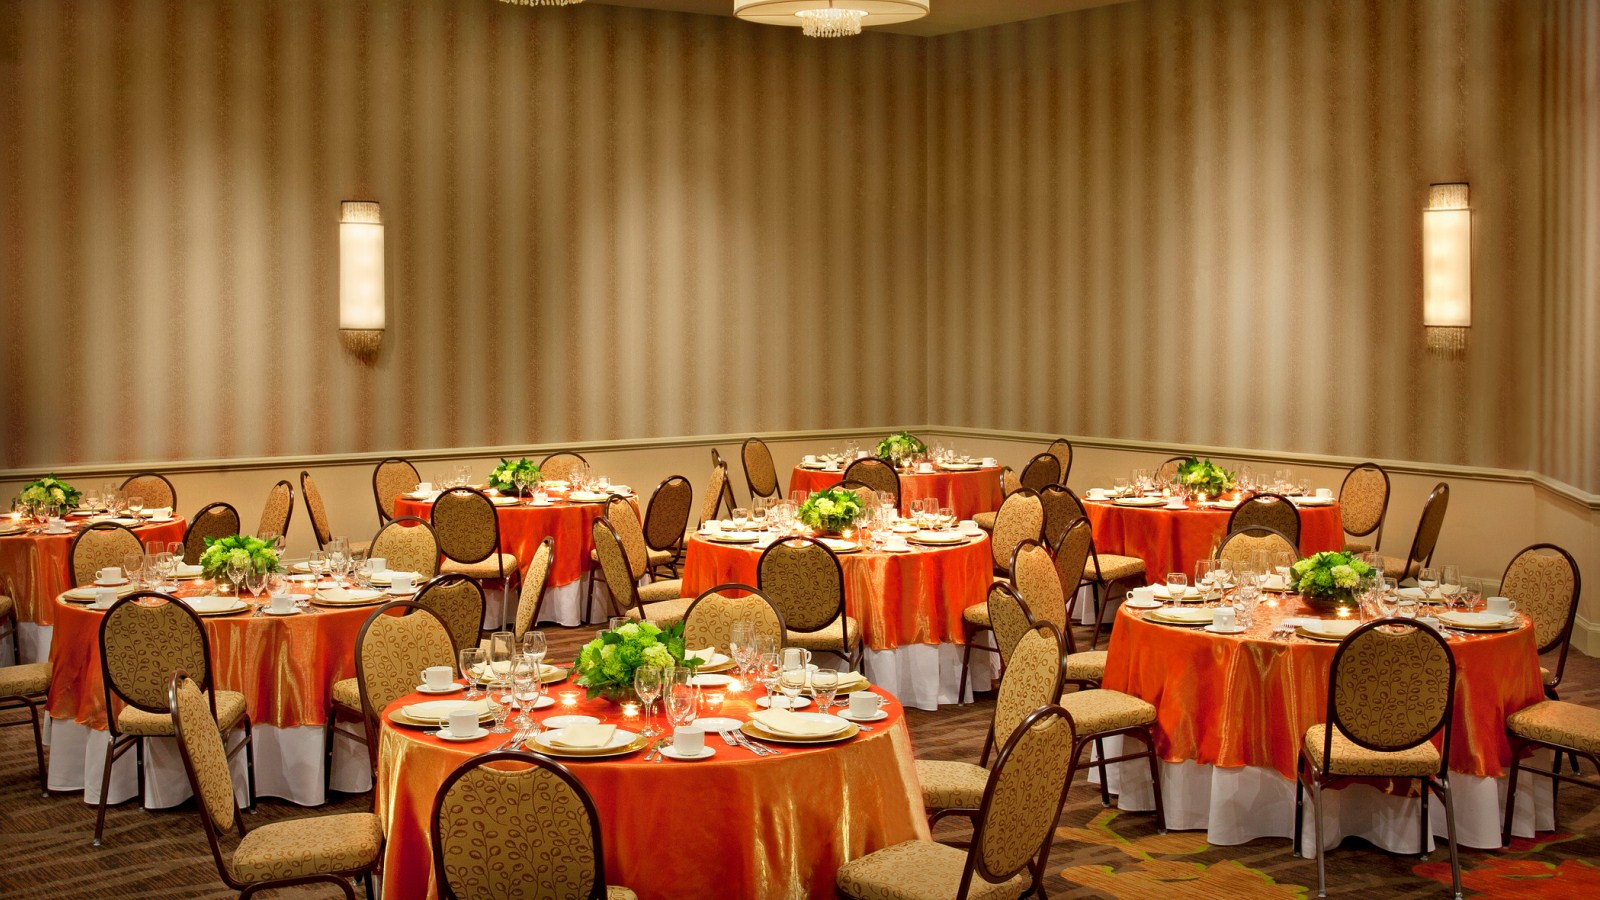 Wedding Venues in Albuqerque - Ballroom Space